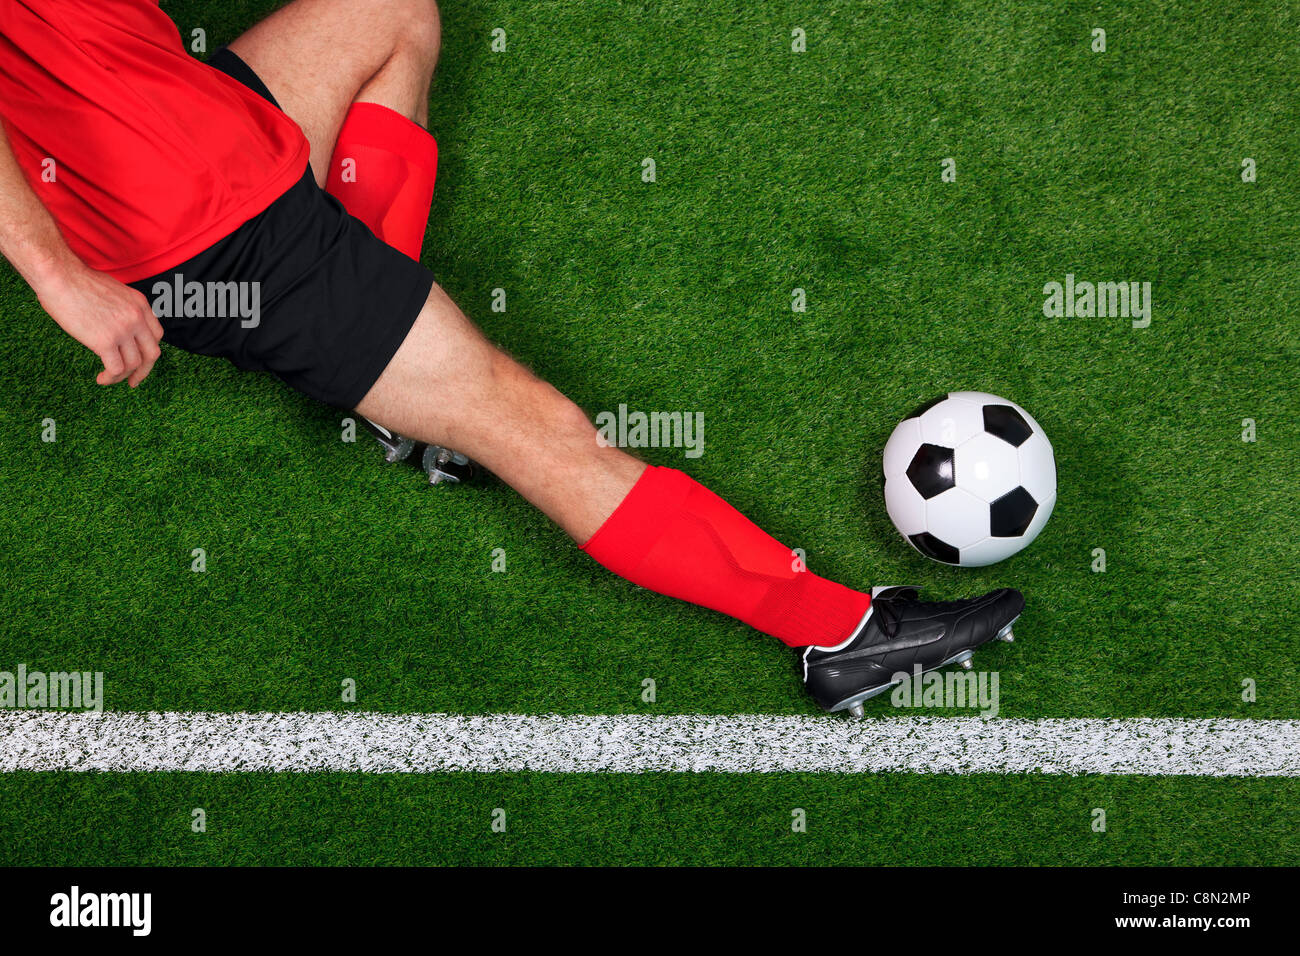 Overhead photo of a football or soccer player sliding in to save the ball going over the sideline - Stock Image